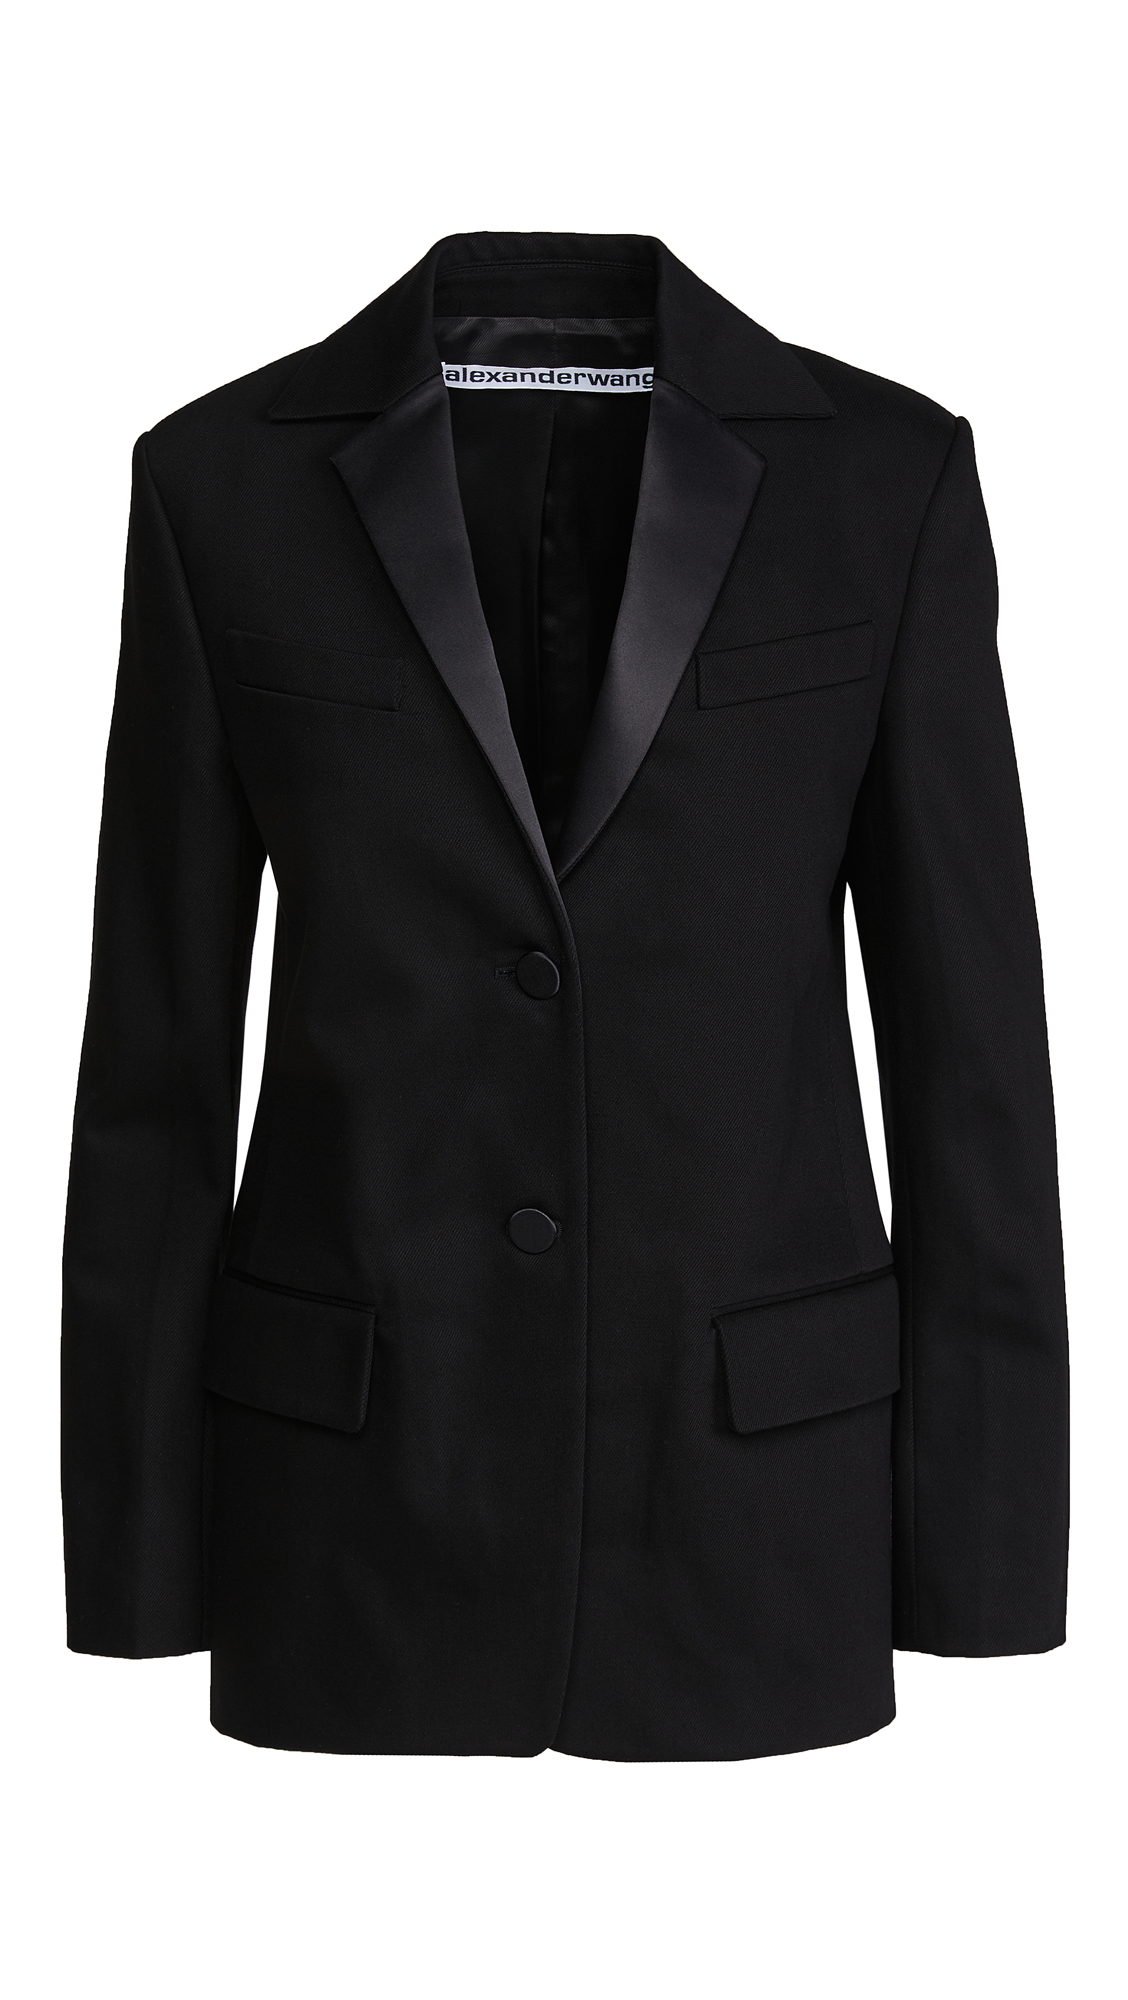 Alexander Wang Boxy Single Breasted Tuxedo Blazer